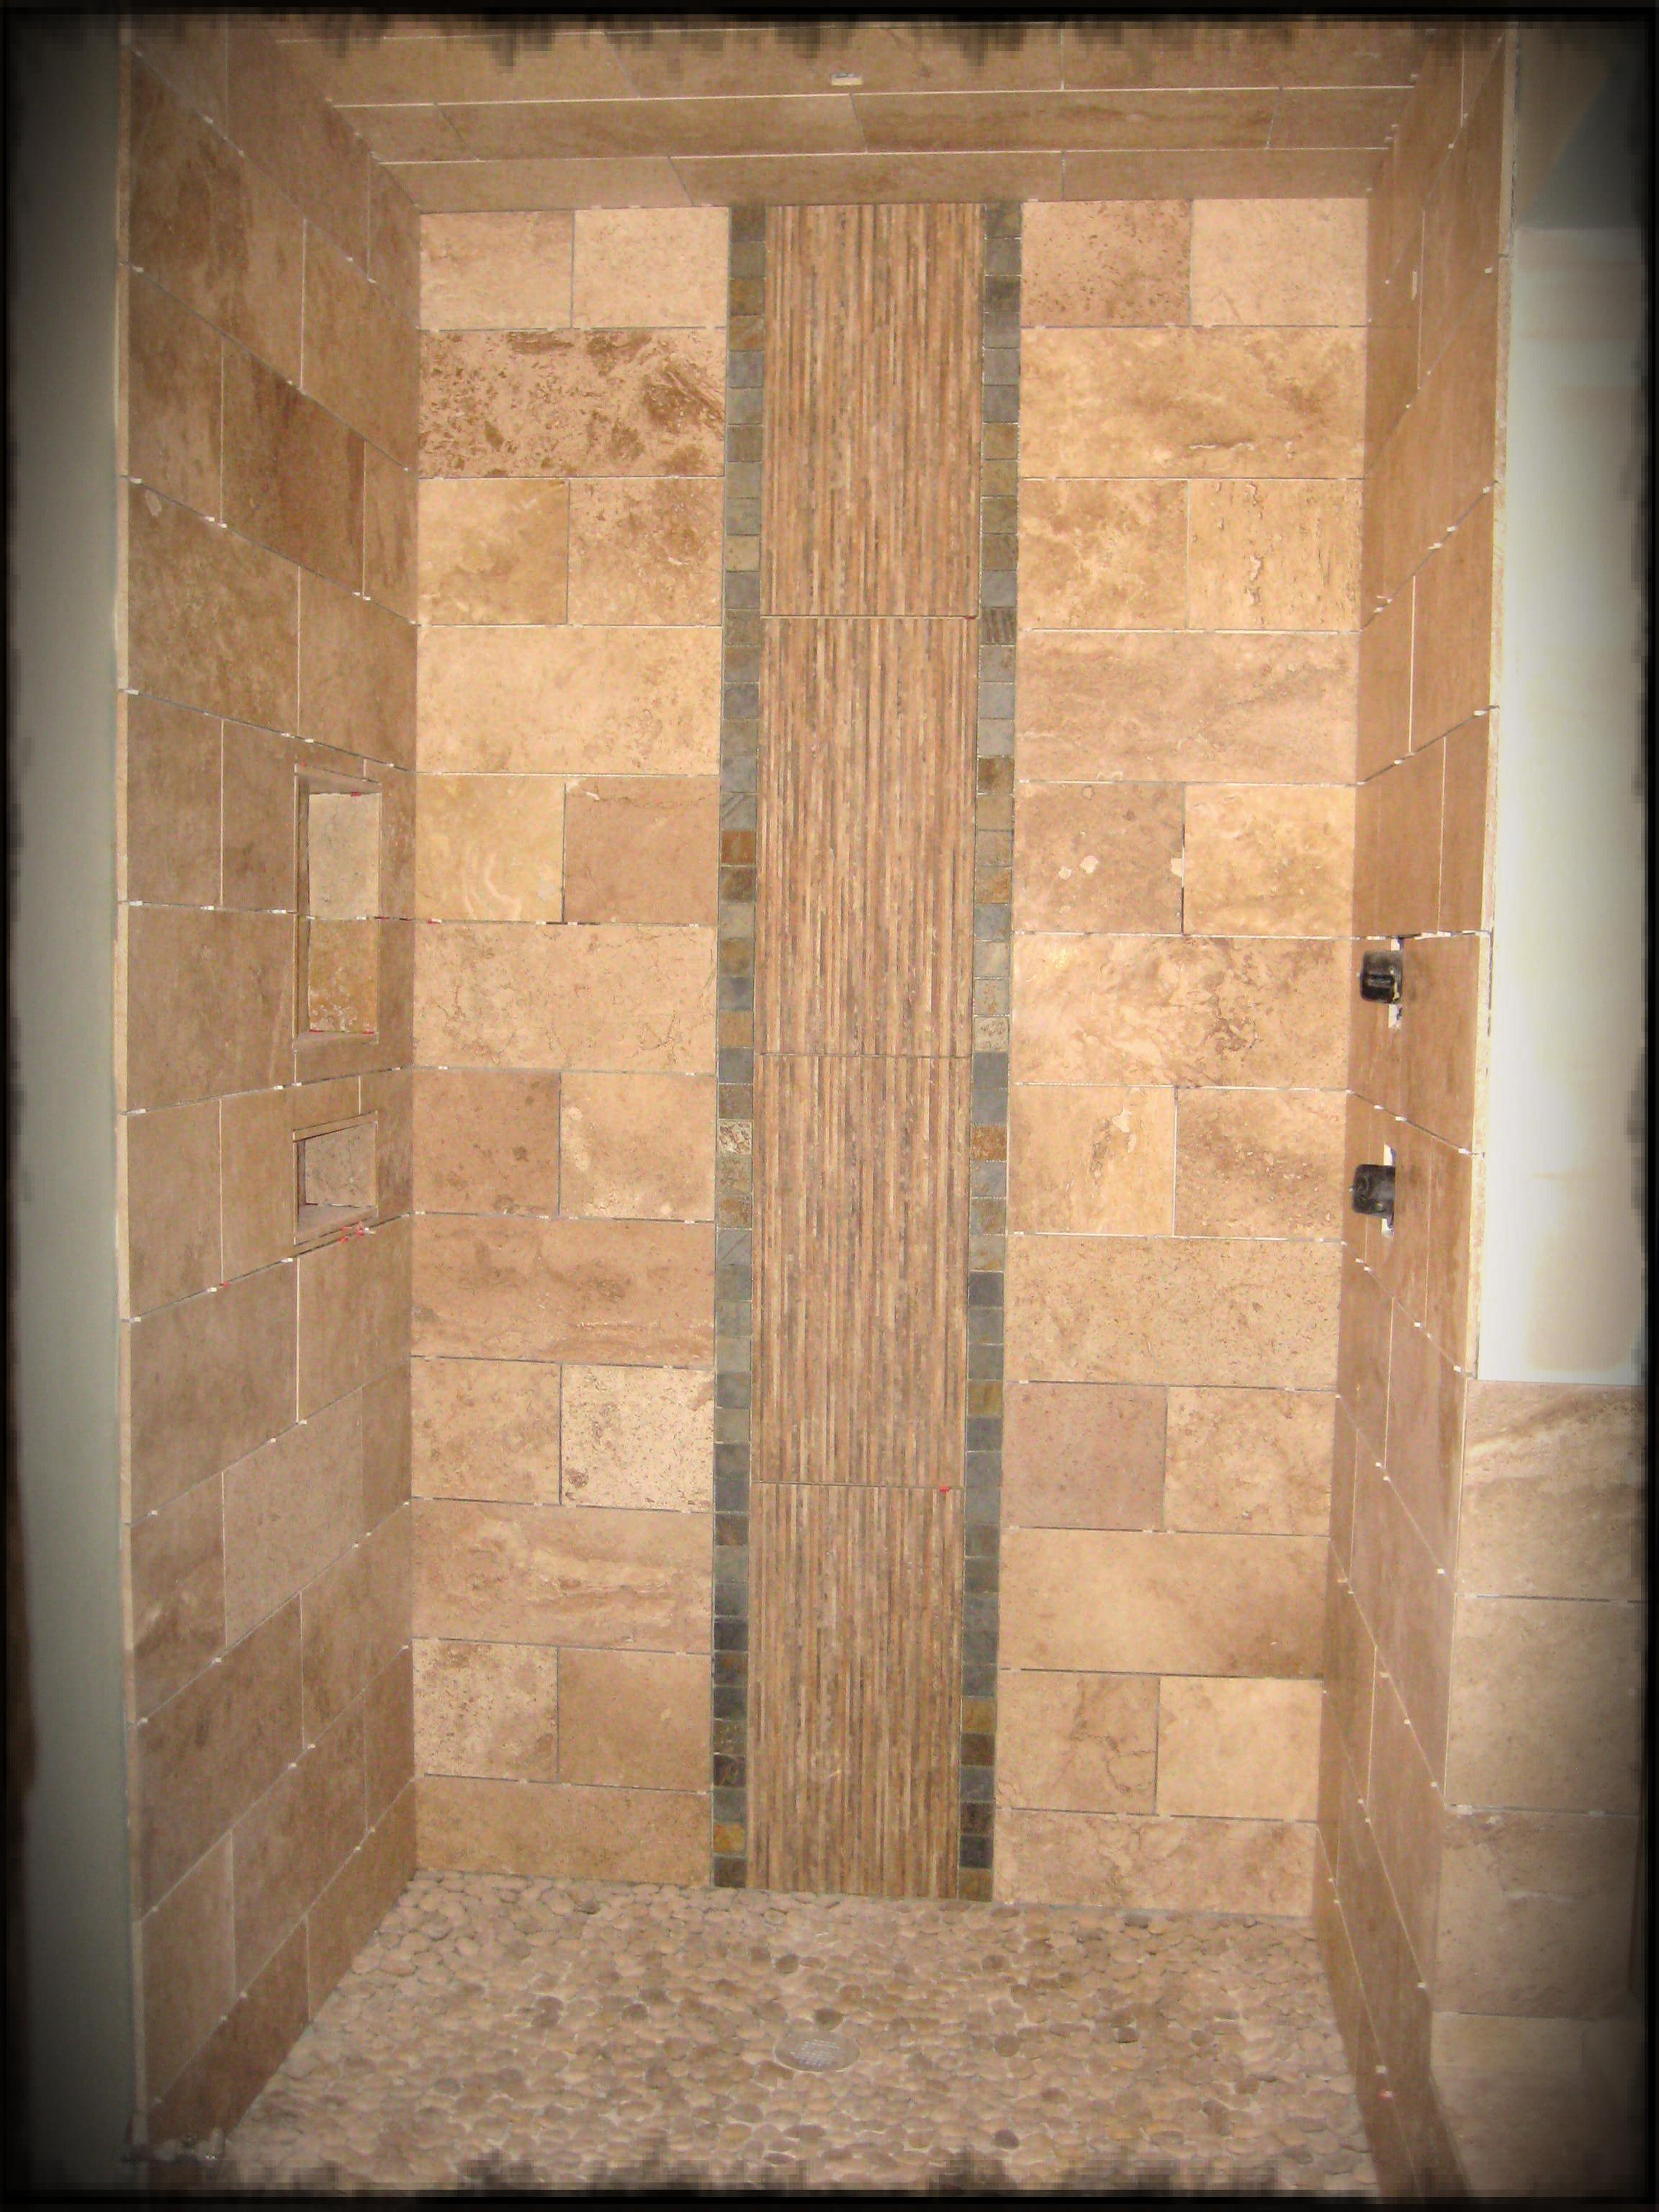 30 cool ideas and pictures custom shower tile designs on Bathroom Tile Pattern Design  id=48006